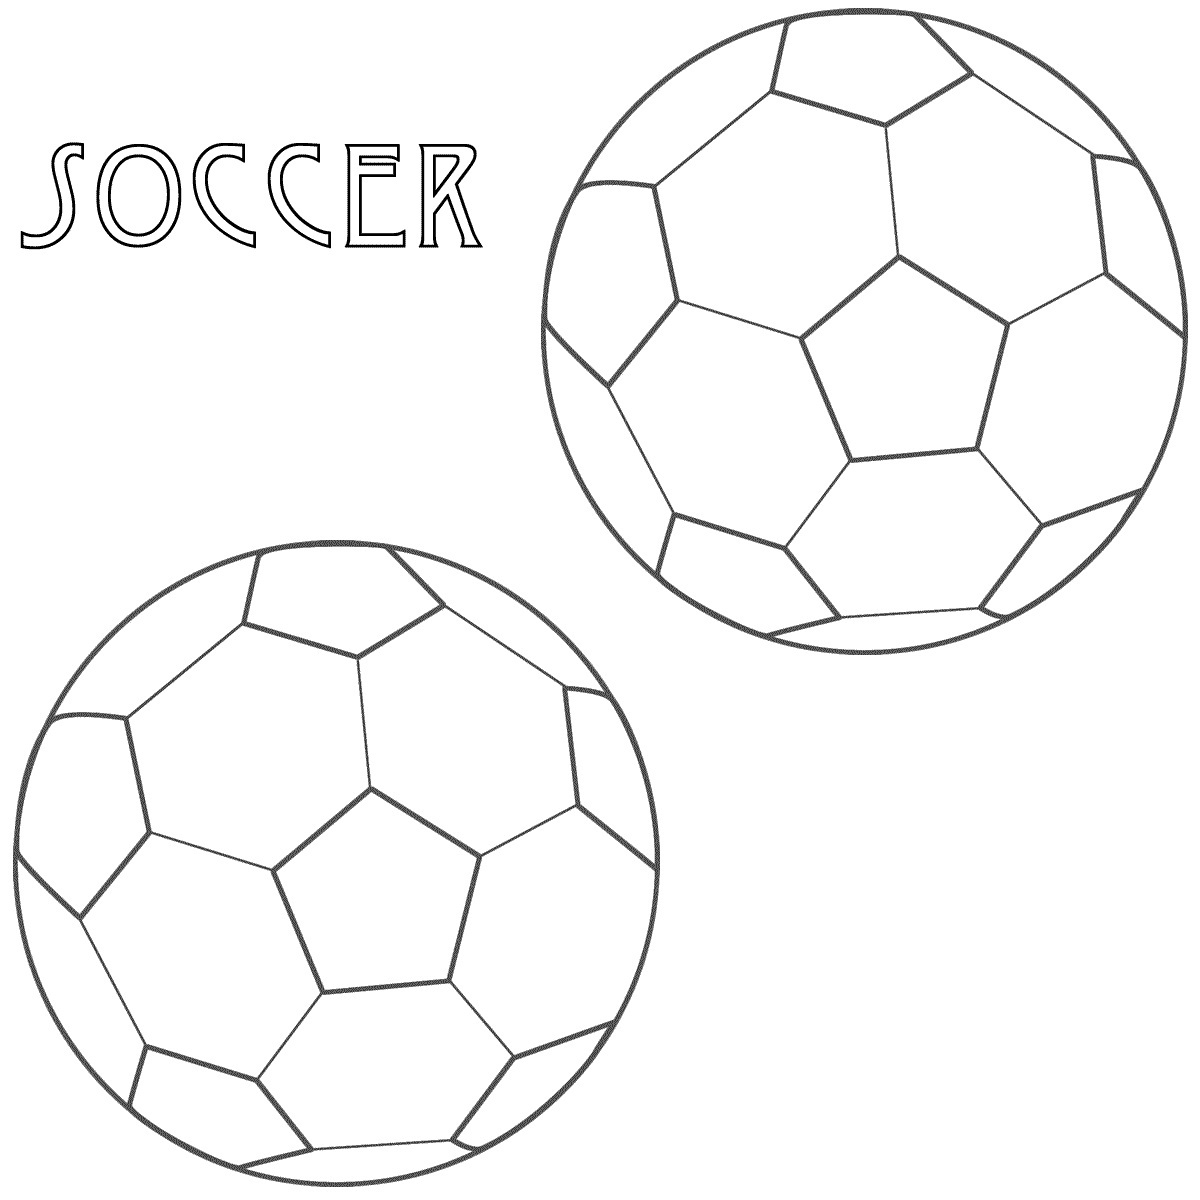 soccer pictures to color soccer player kid colouring pages page 3 coloring home soccer color pictures to